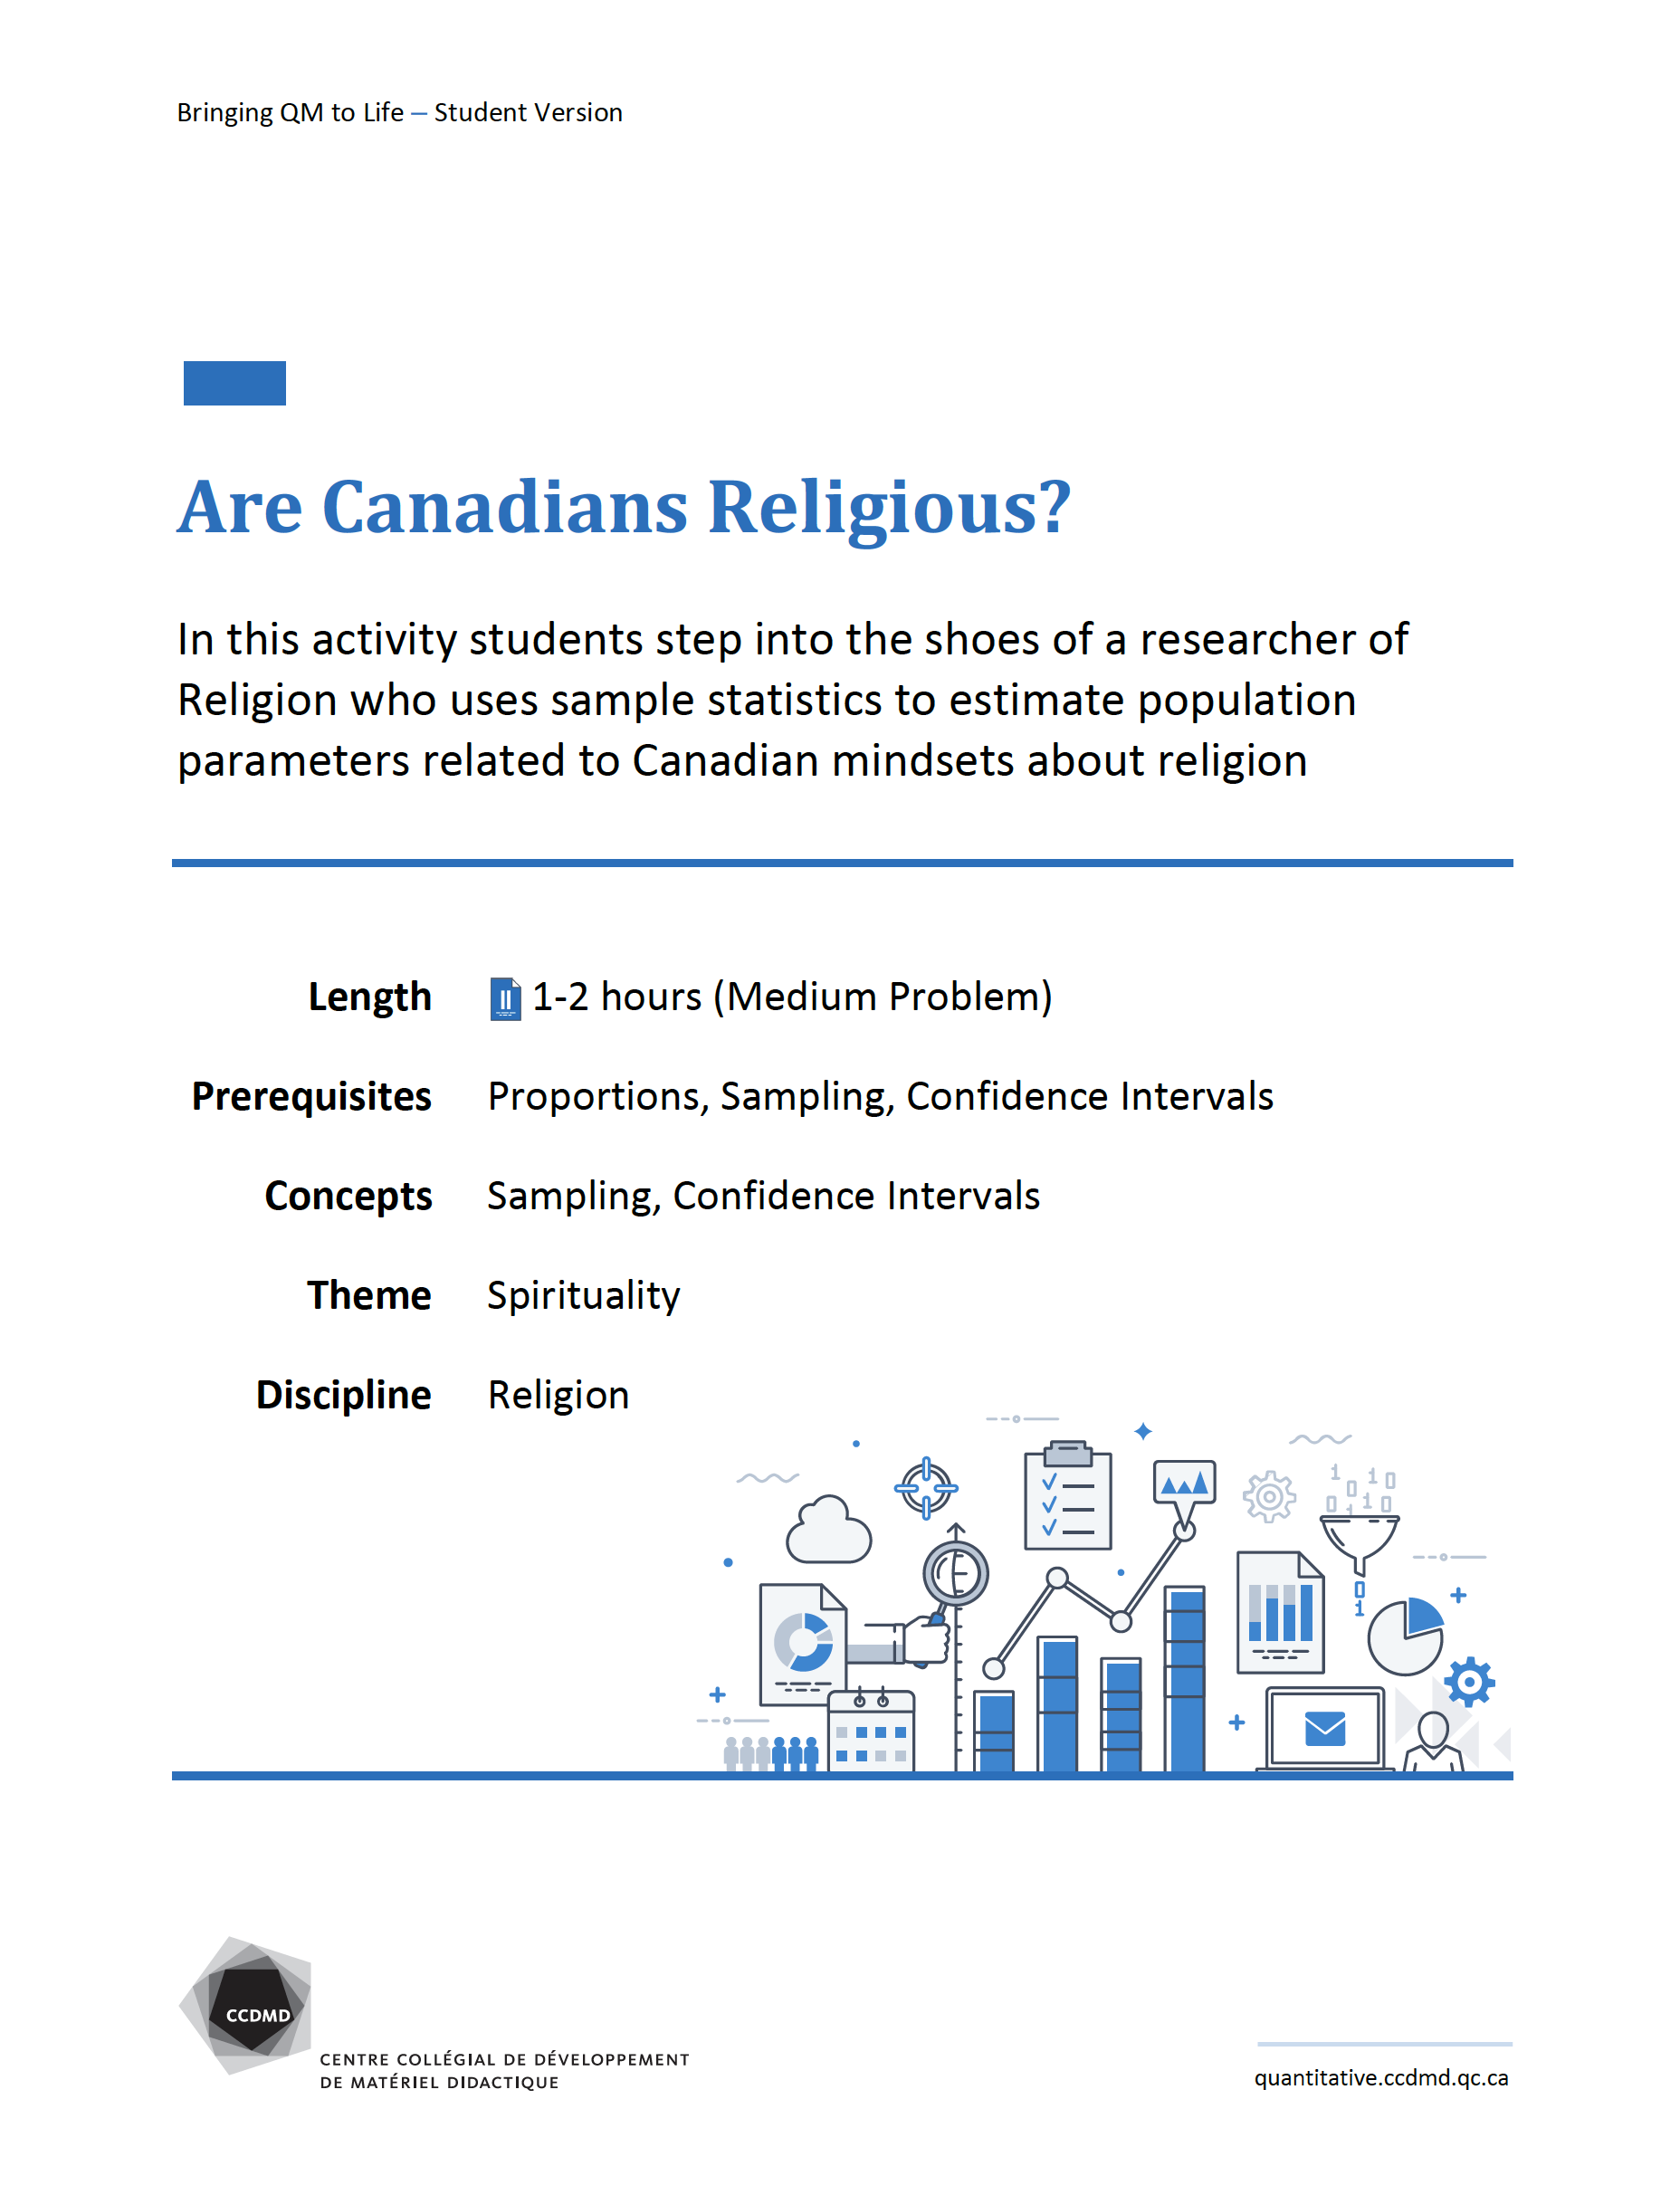 Are Canadians Religious?